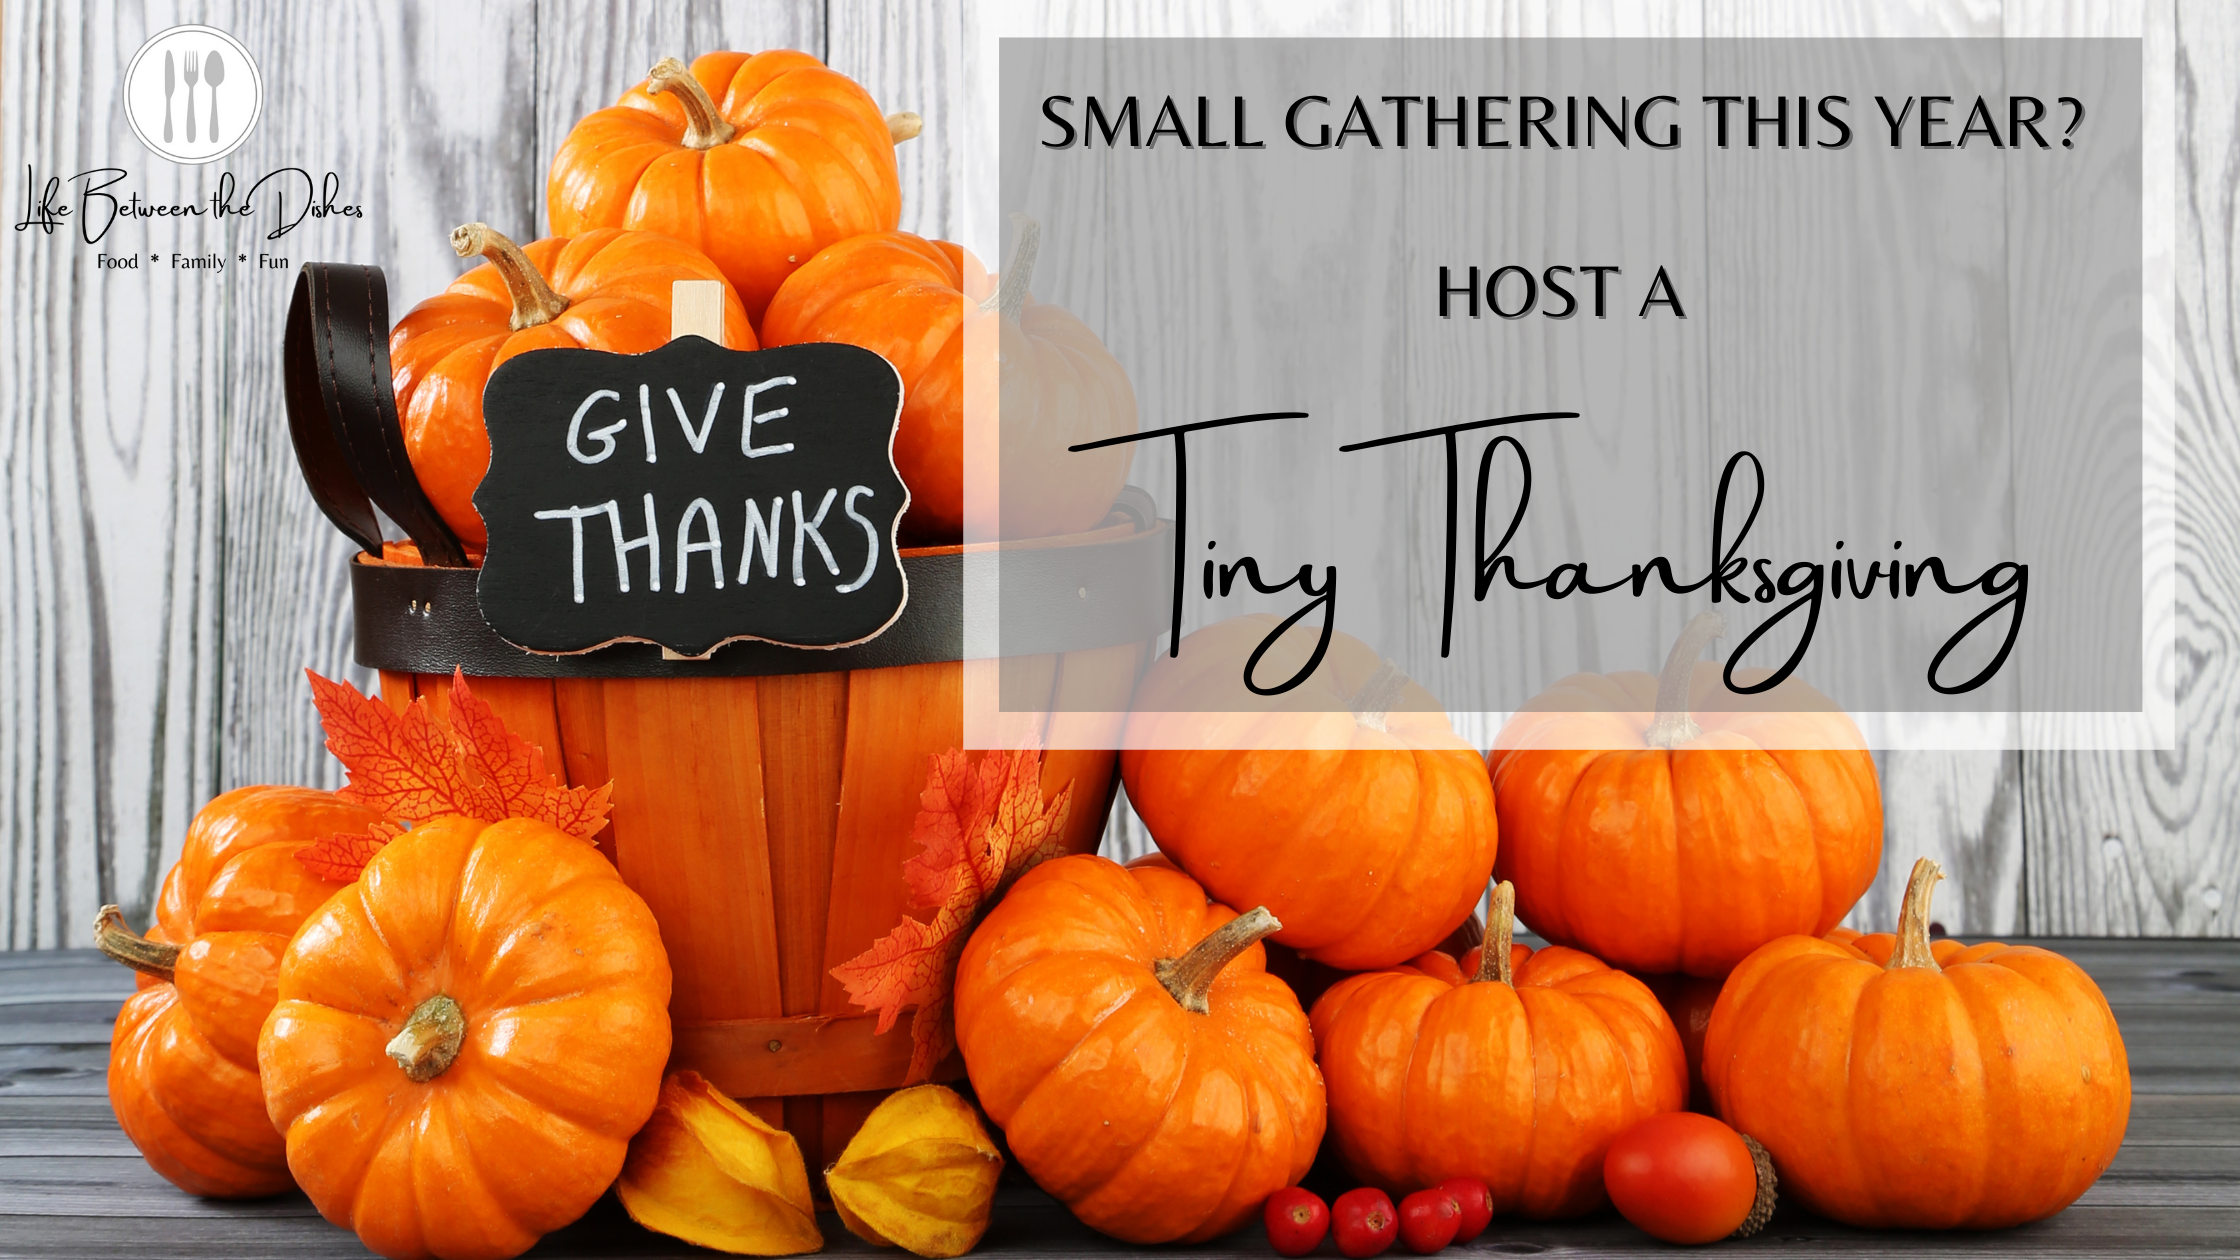 How to Host a Tiny Thanksgiving for a Small Gathering